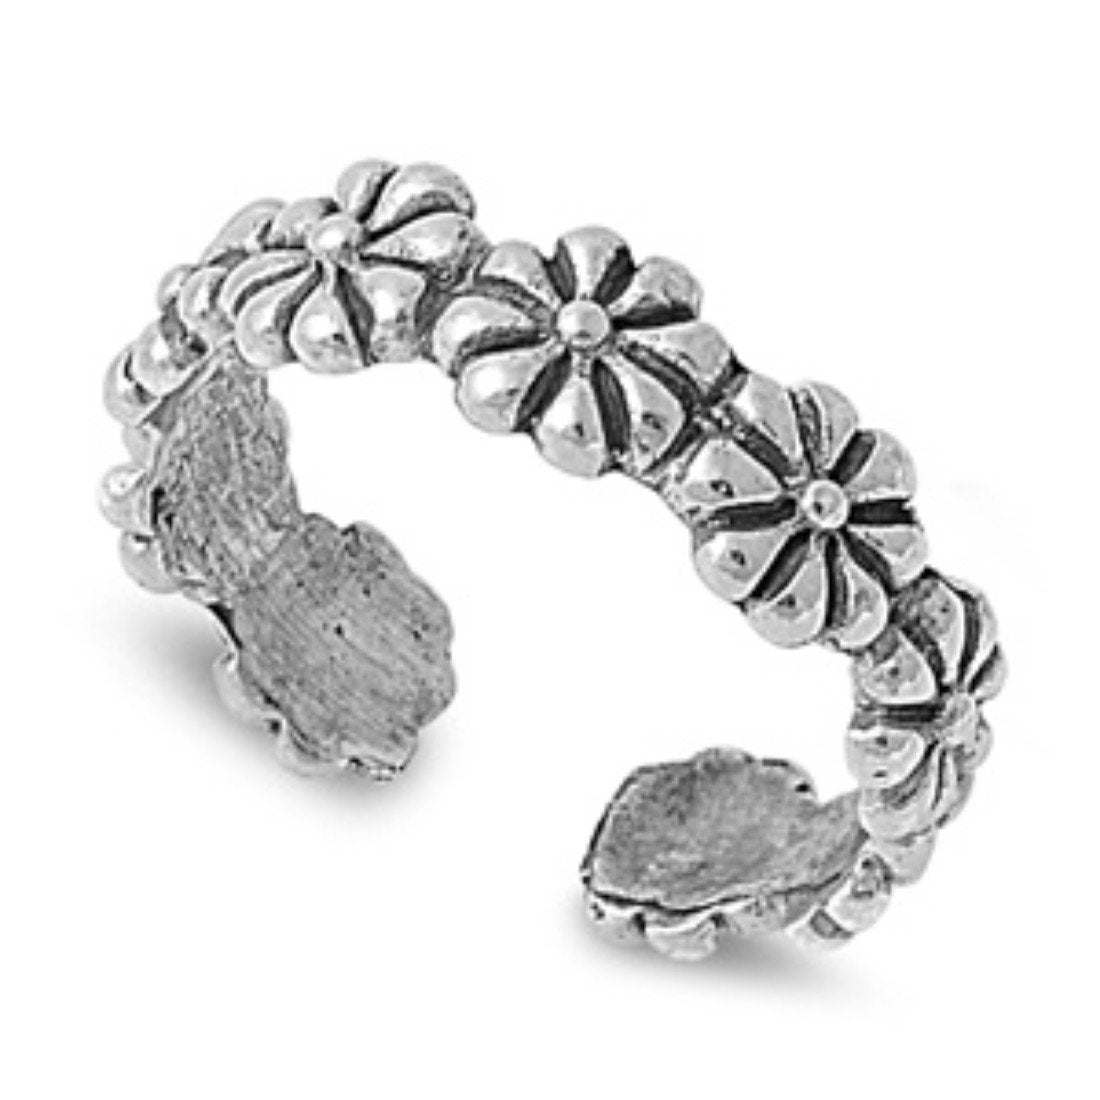 Flower Silver Toe Ring Adjustable Band 925 Sterling Silver (4mm)